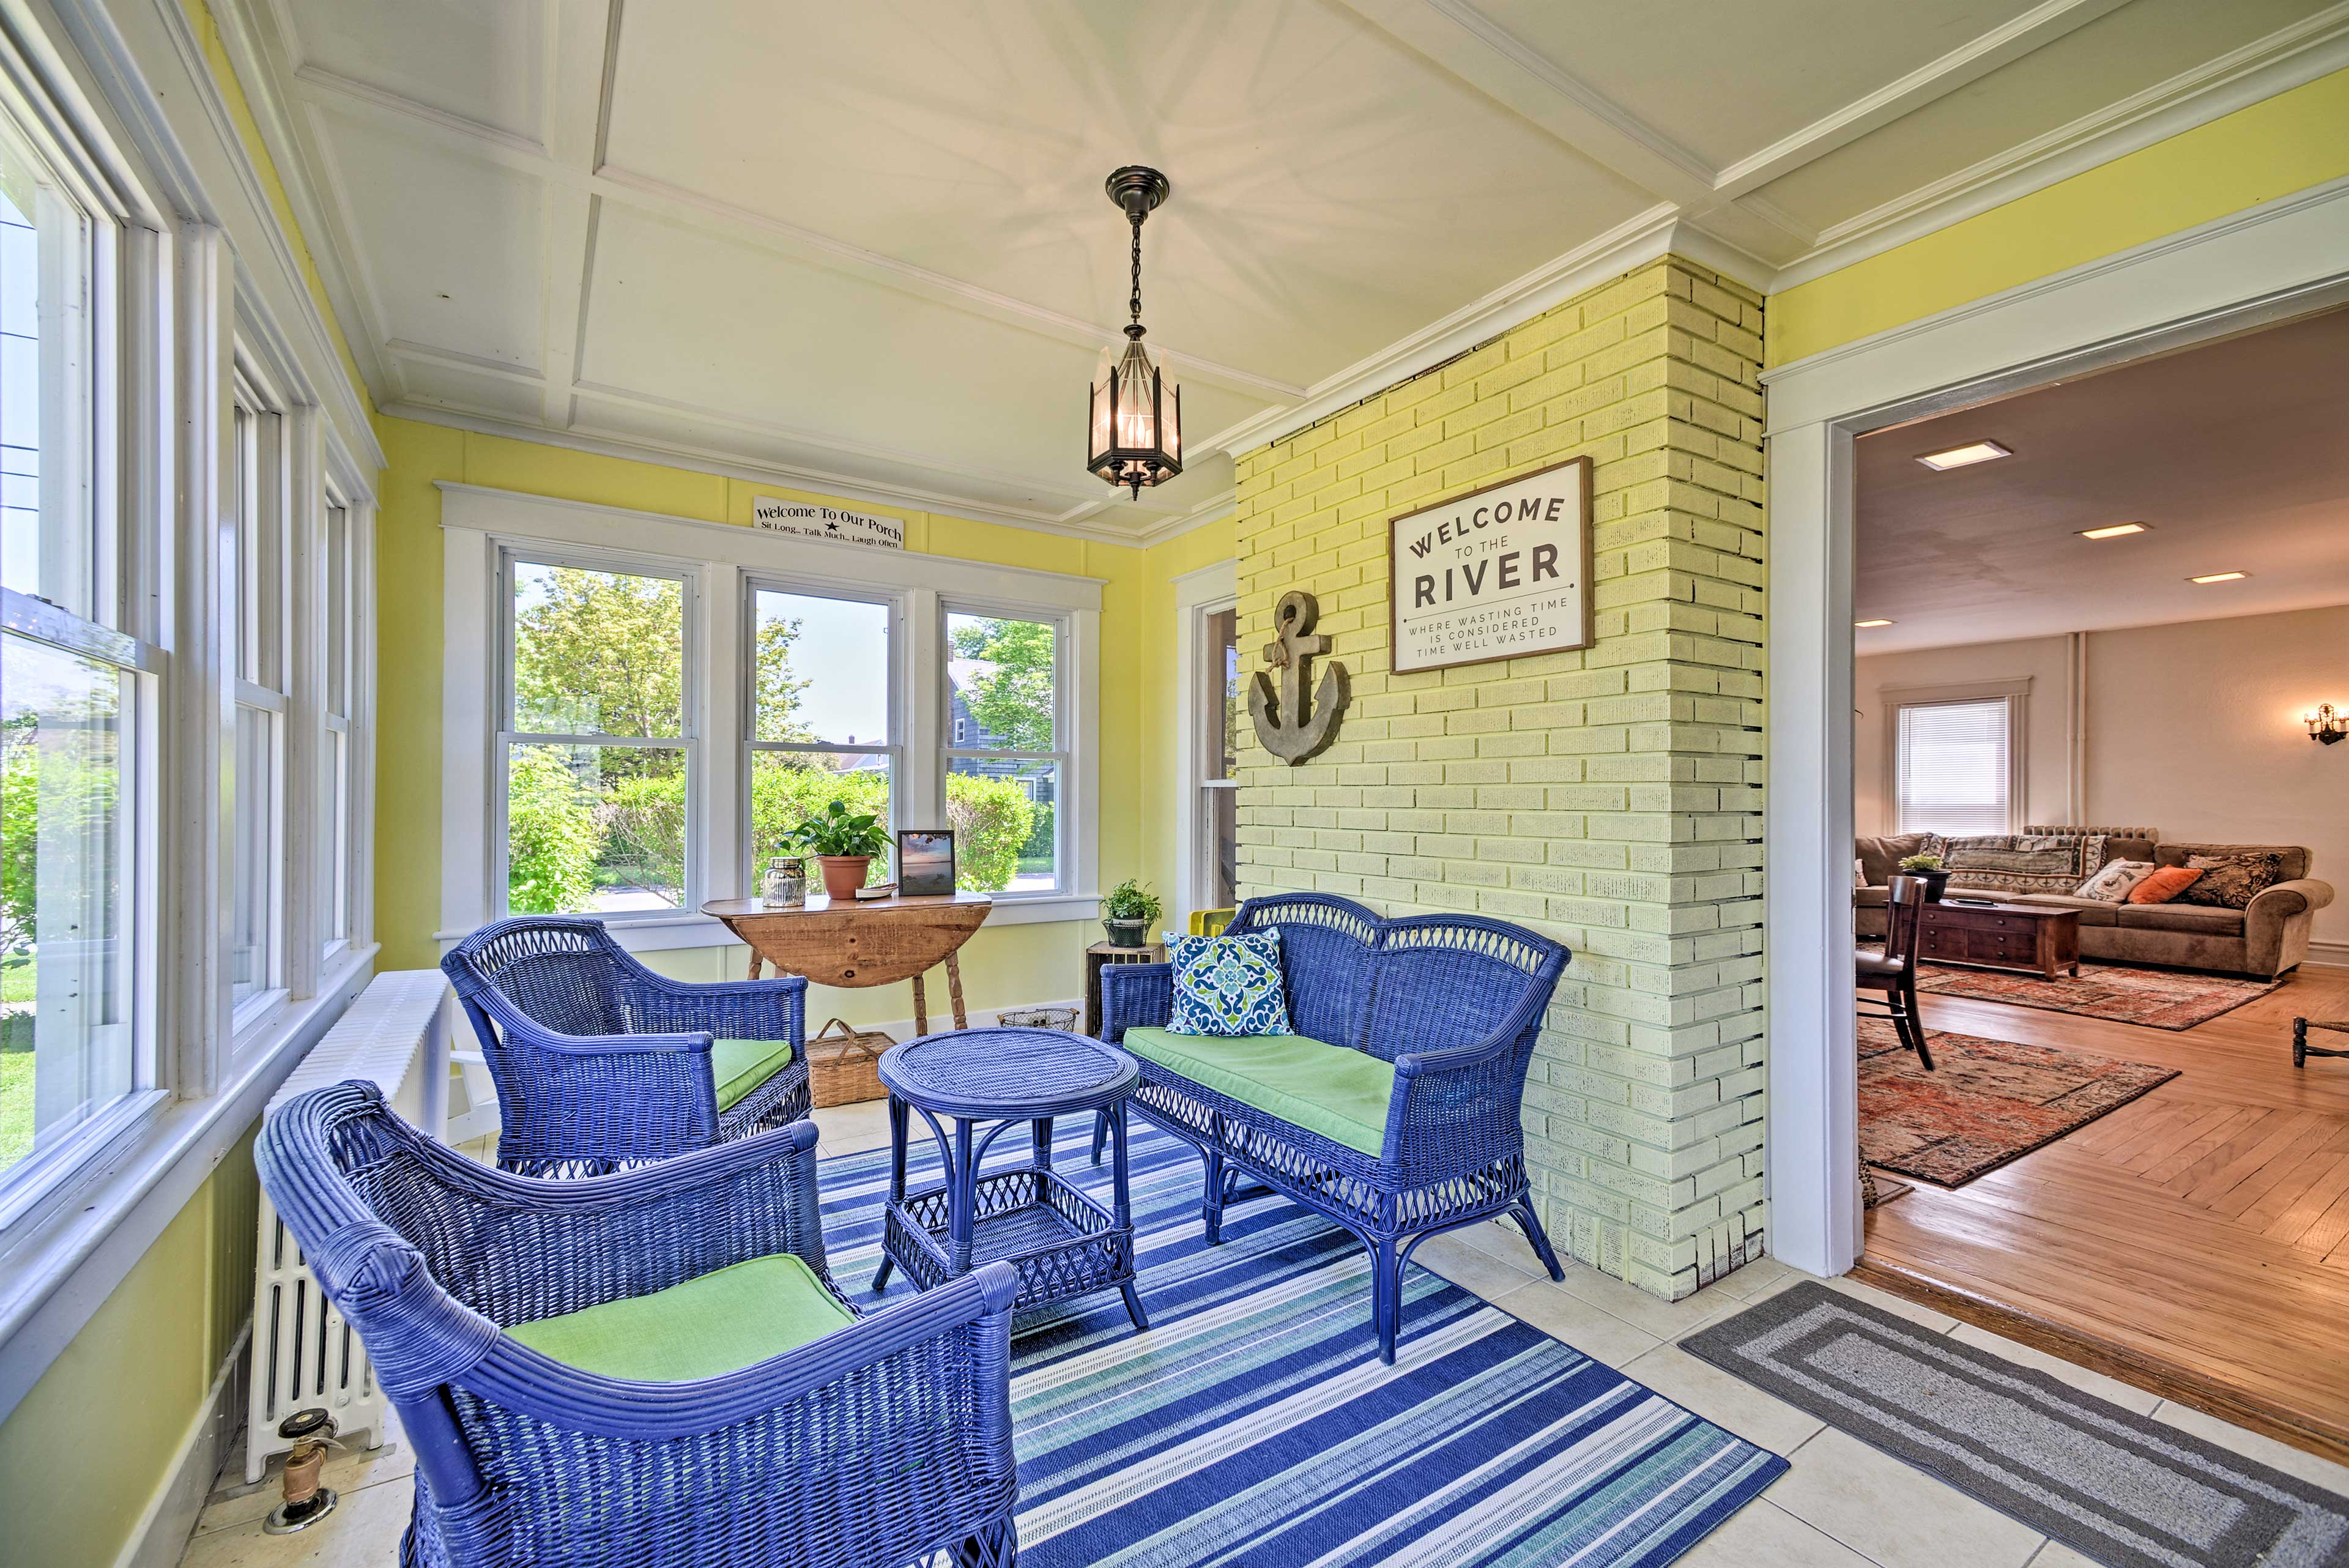 You'll love spending time in the porch.